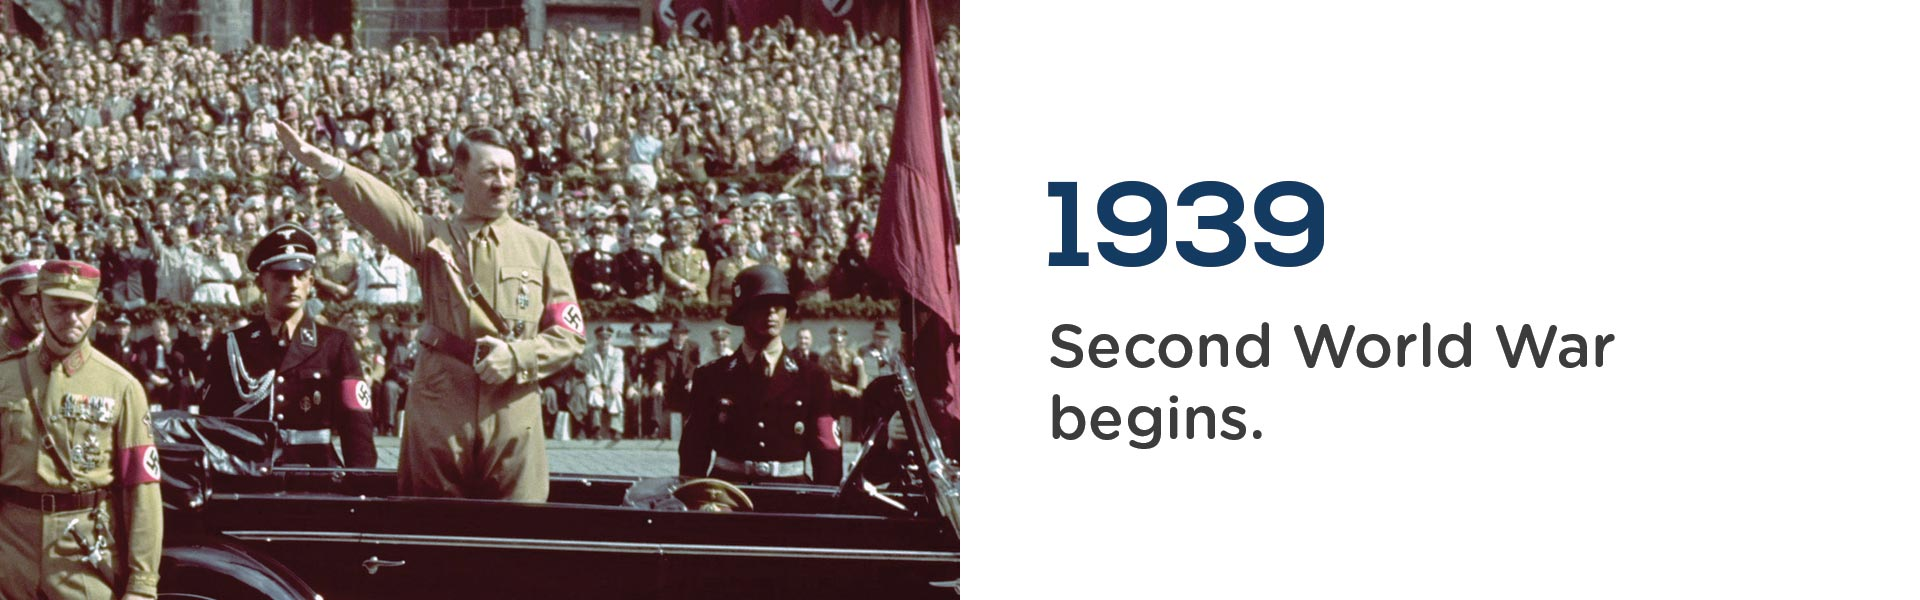 in 1939 the Second World War begins.Wrigley Claydon Solicitors, Trusted for 200 years